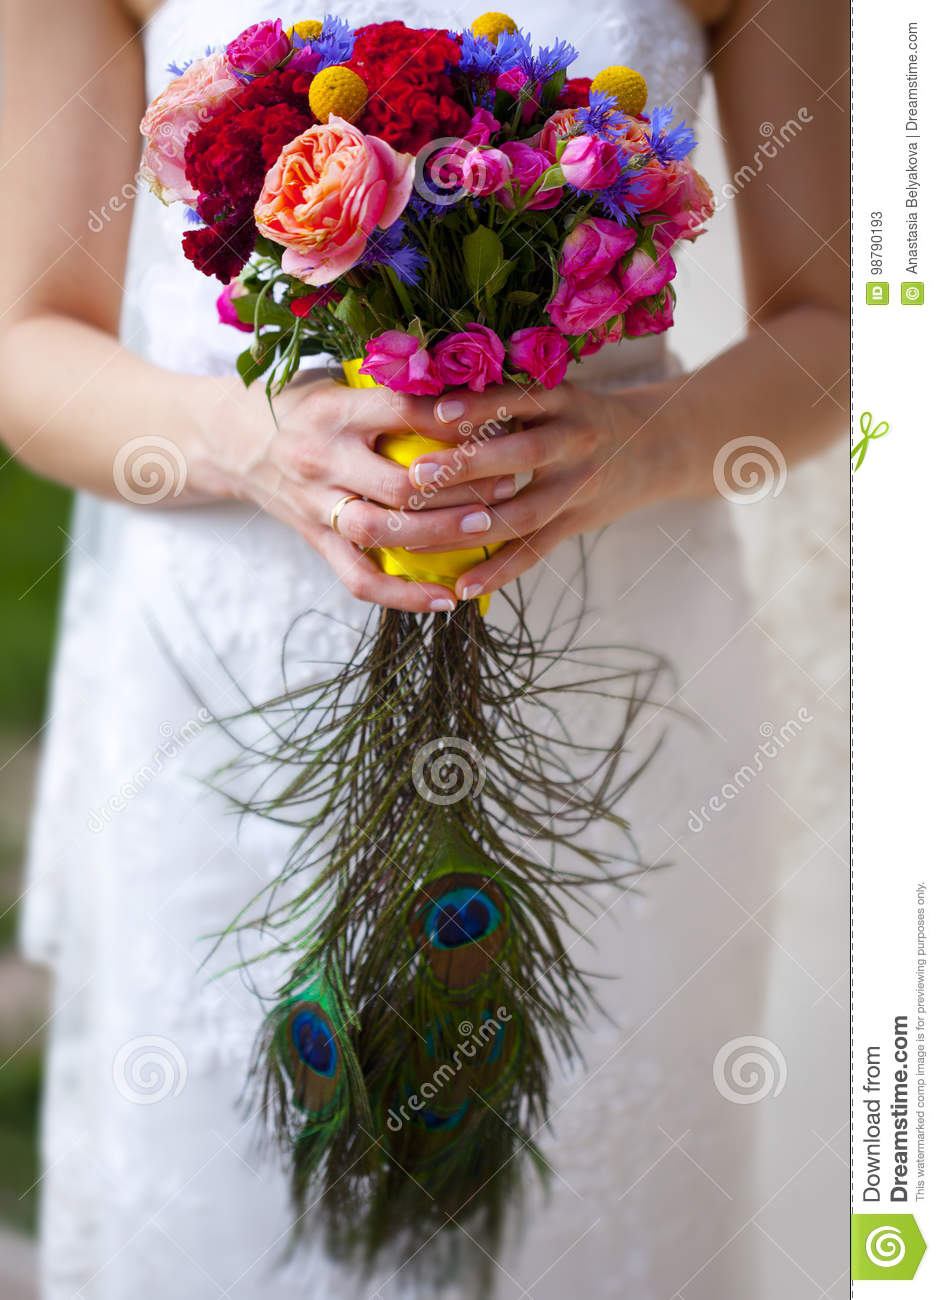 Wedding Bouquet Of Pink Red Blue And Yellow Flowers And Hand Of